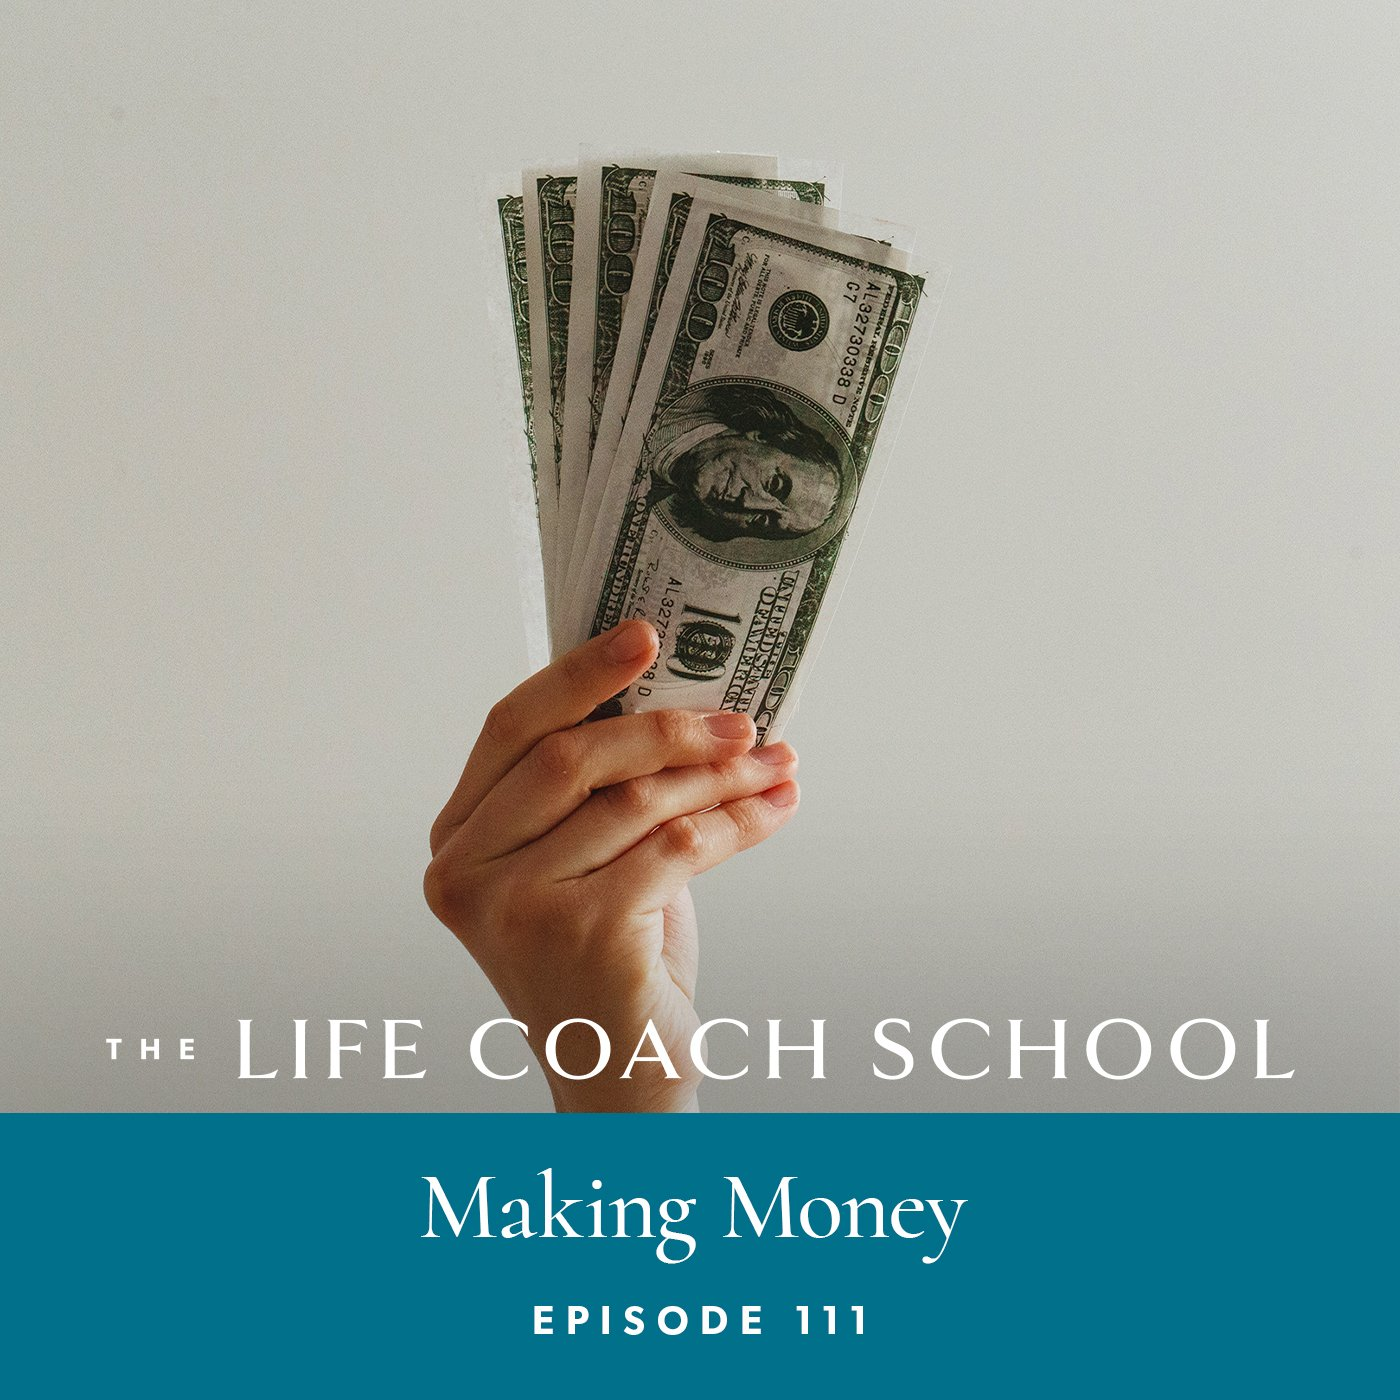 The Life Coach School Podcast with Brooke Castillo | Episode 111 | Making Money